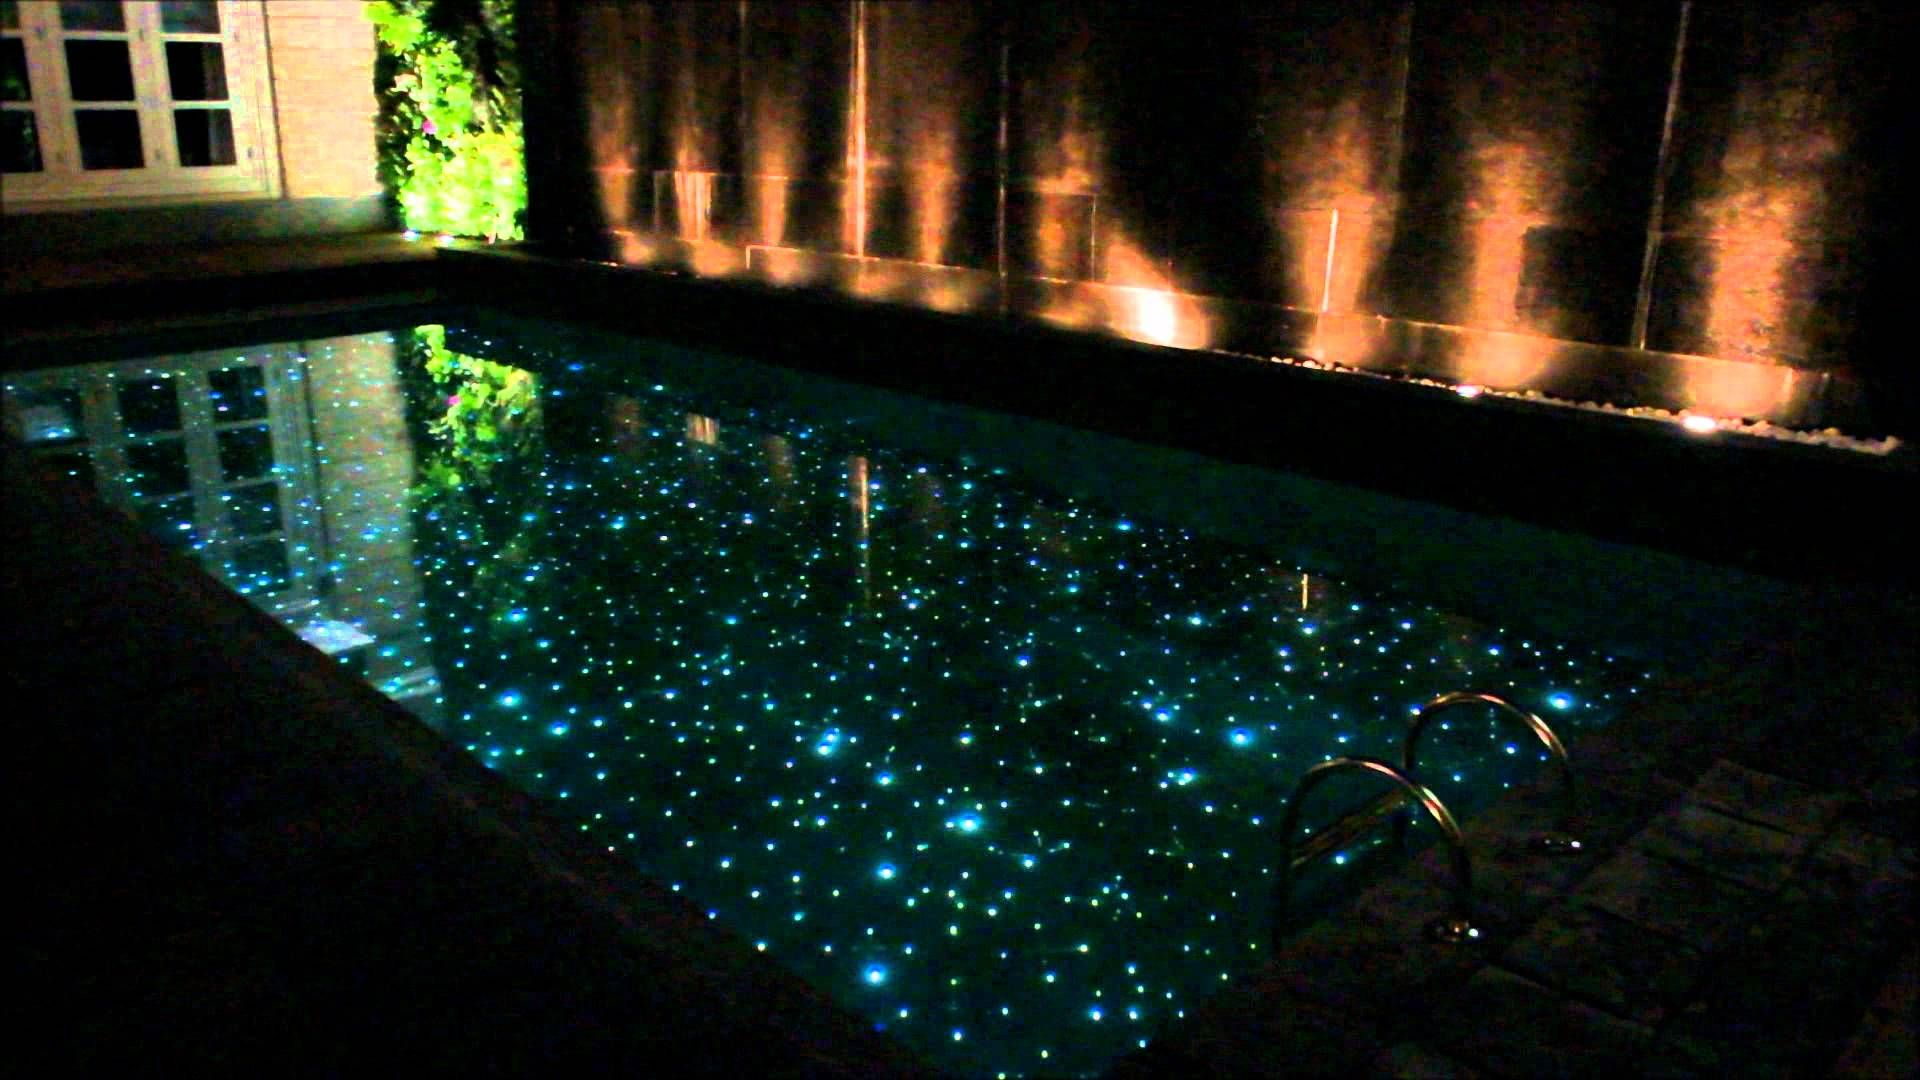 Frank Colorful Waterproof Led Projector Light Home Bathtub Lamp Night Light Underwater Floating Light For Party Pond Spa Swim Pool Led Underwater Lights